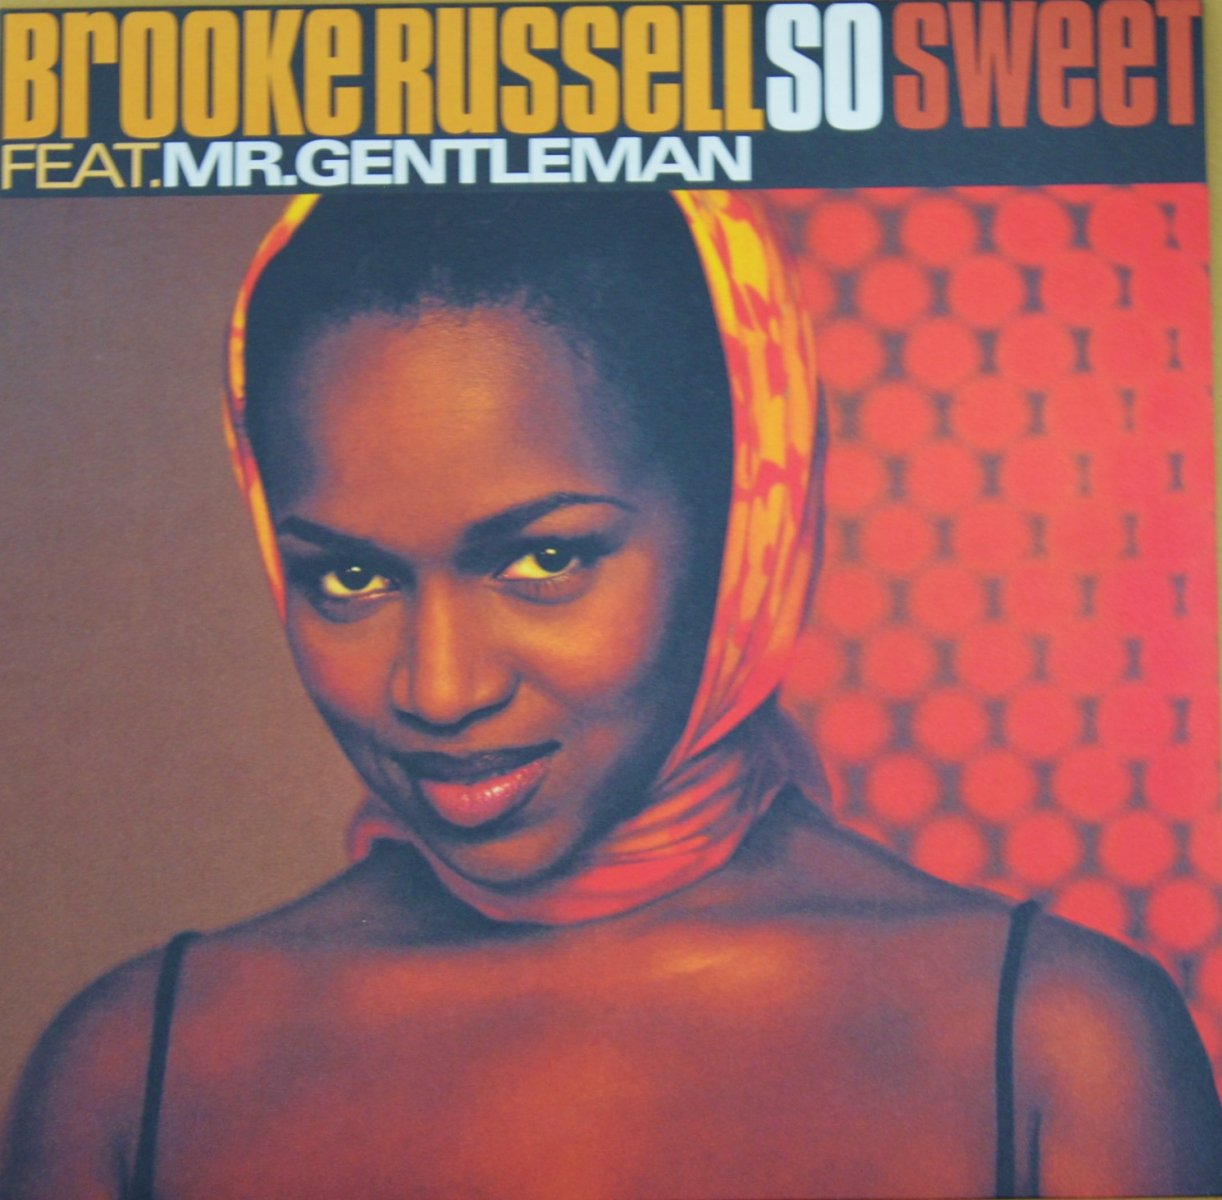 BROOKE RUSSELL FEAT. MR. GENTLEMAN / SO SWEET (12